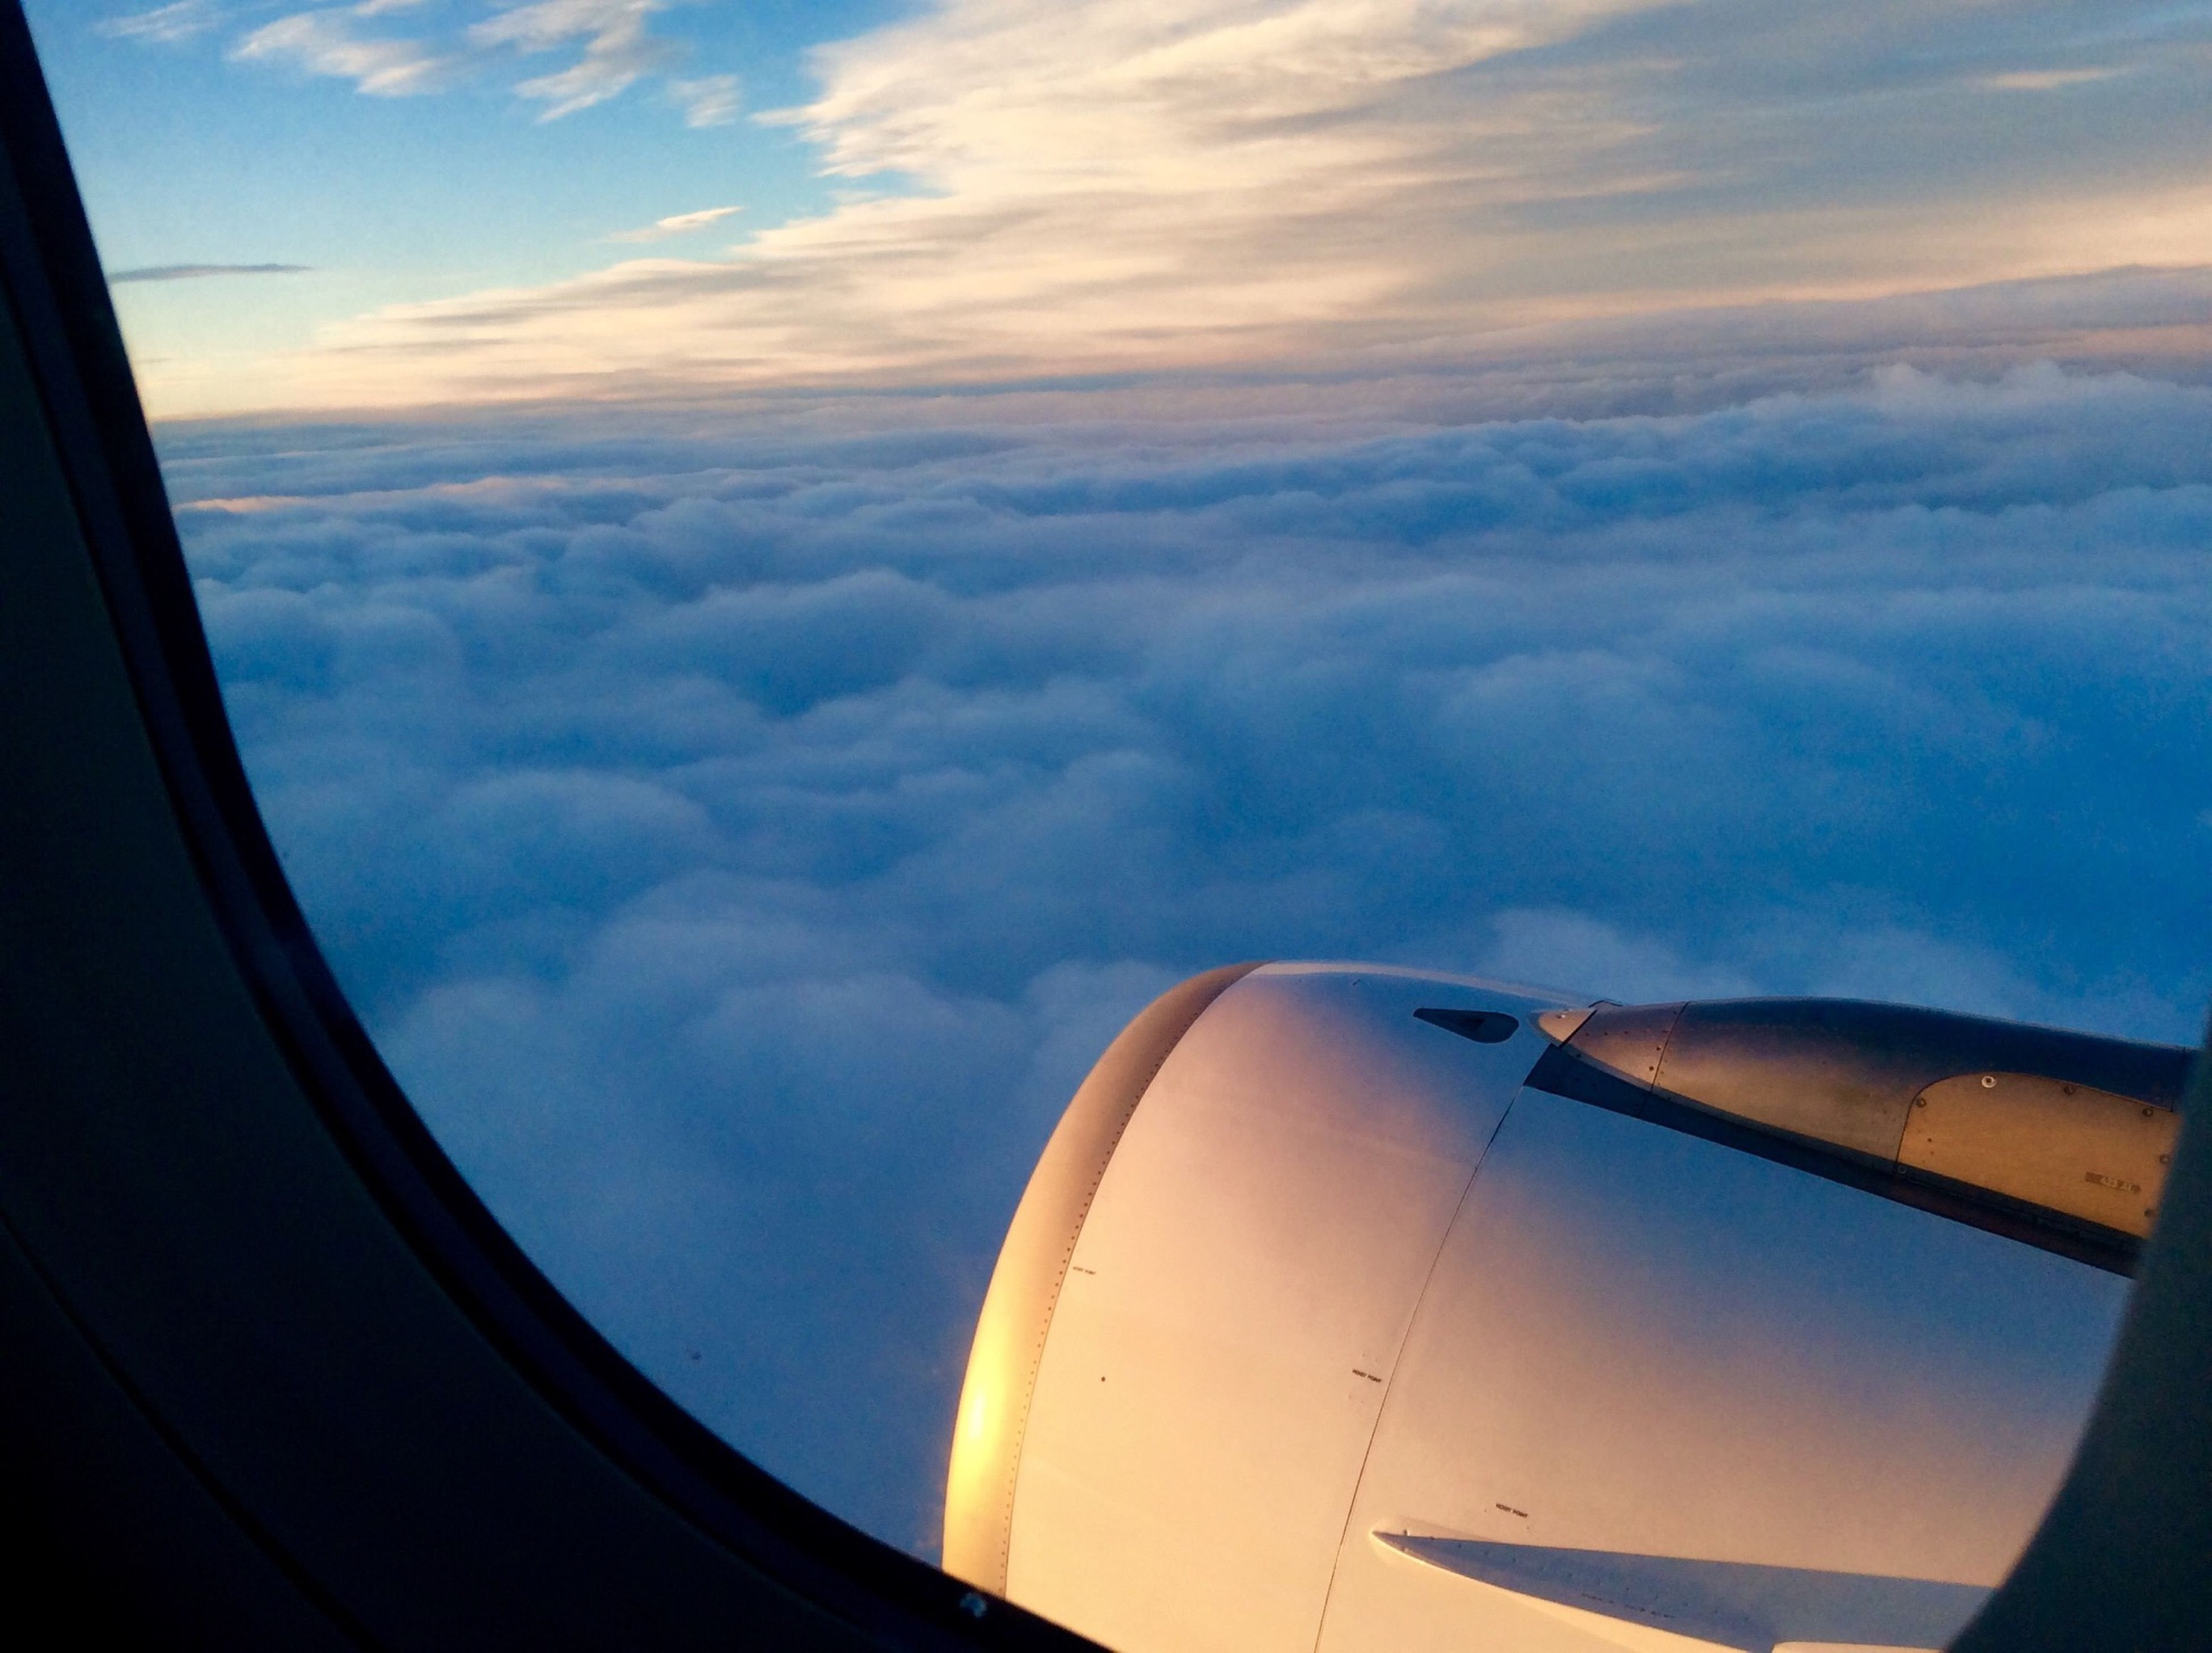 transportation, airplane, air vehicle, mode of transport, sky, part of, cloud - sky, cropped, aircraft wing, flying, cloud, public transportation, travel, journey, on the move, mid-air, aerial view, no people, vehicle part, glass - material